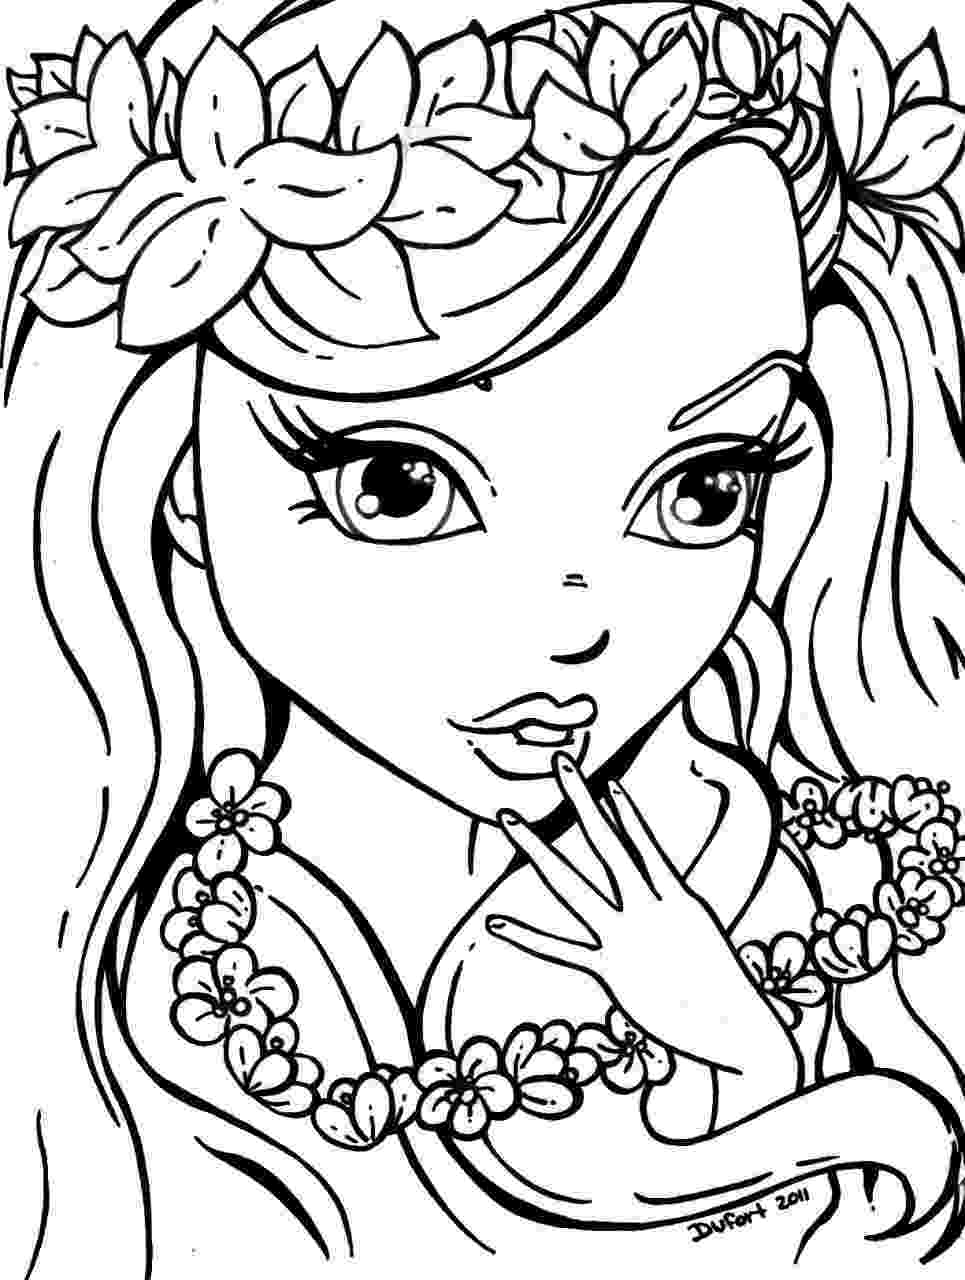 colering pages for girls cute girl coloring pages to download and print for free for pages colering girls